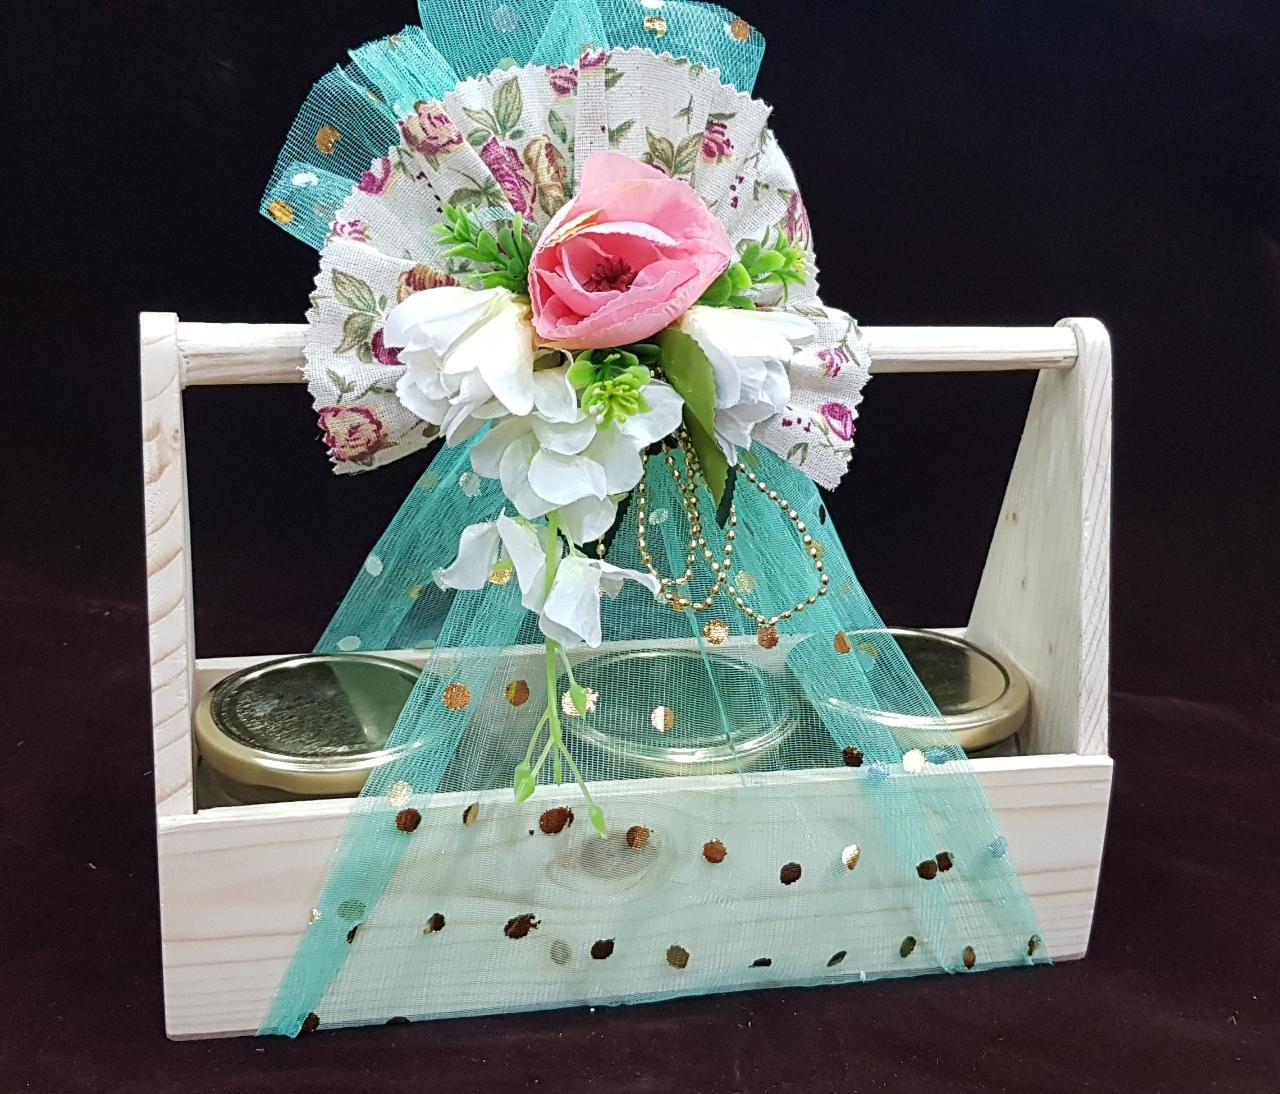 Rs. 550/ Pine basket with 3 Jar and decoration. Get more